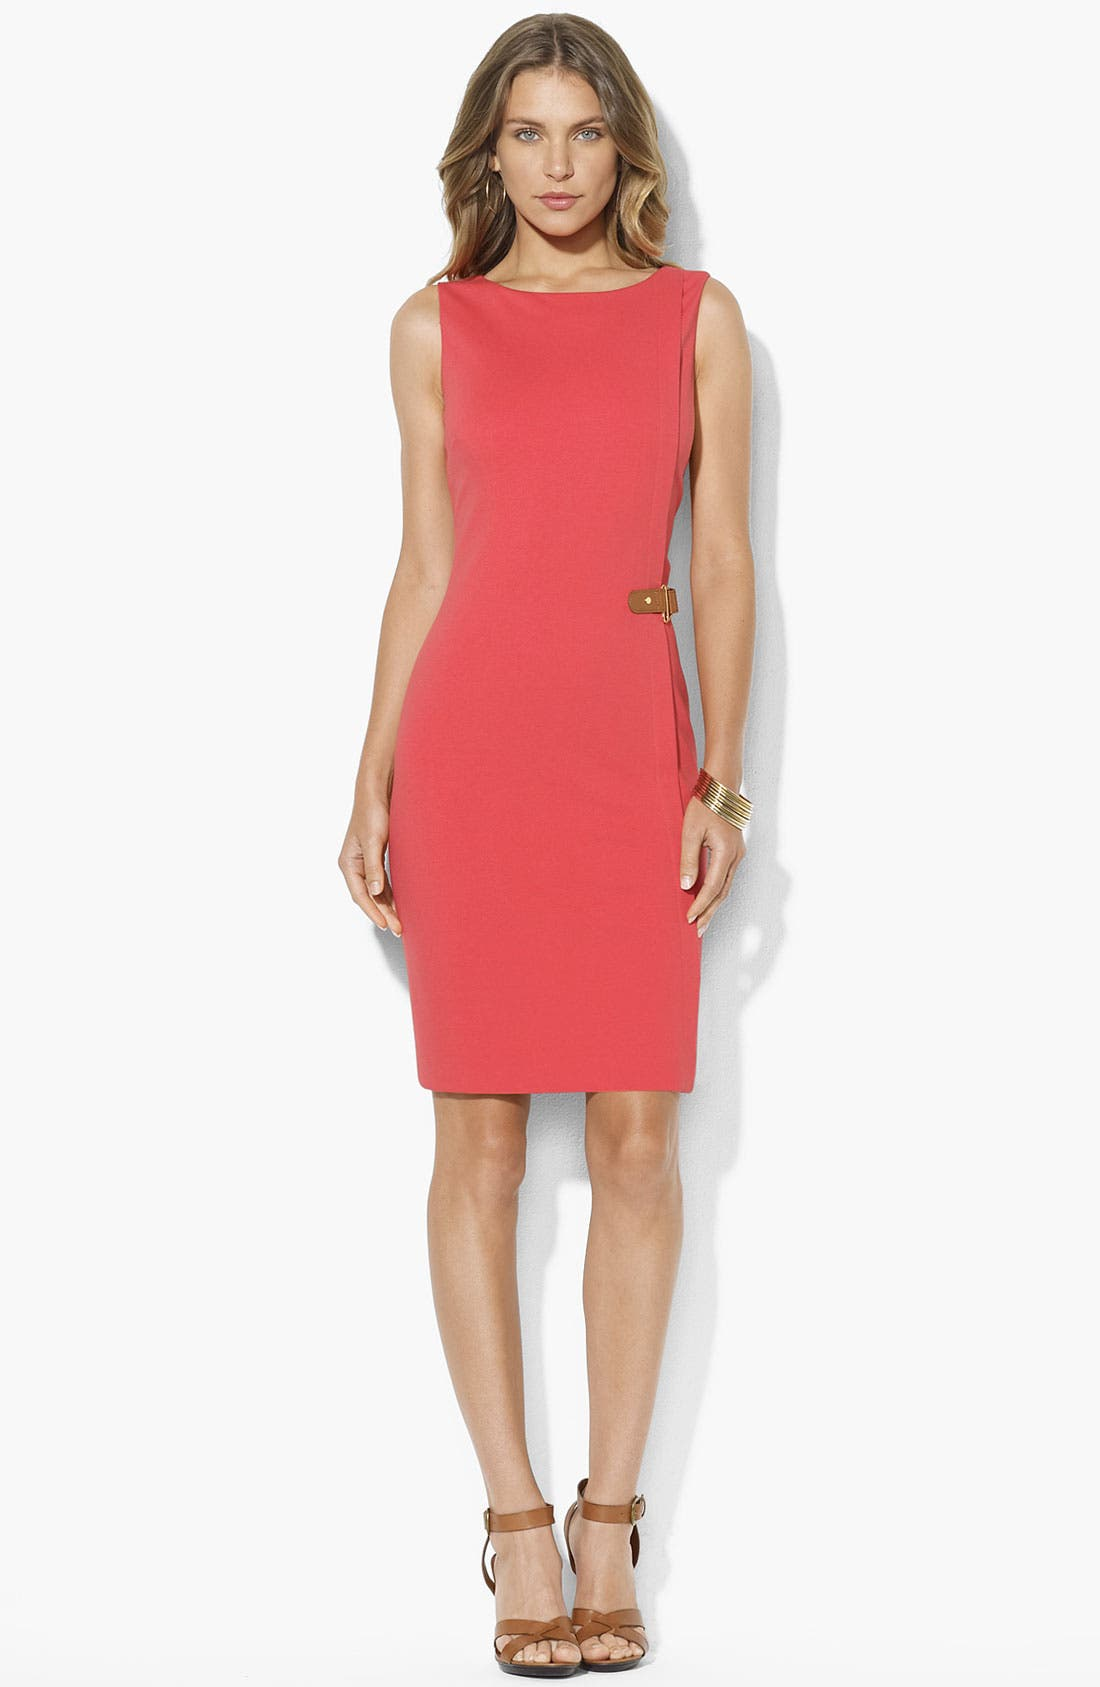 Alternate Image 1 Selected - Lauren Ralph Lauren Ponte Knit Sheath Dress